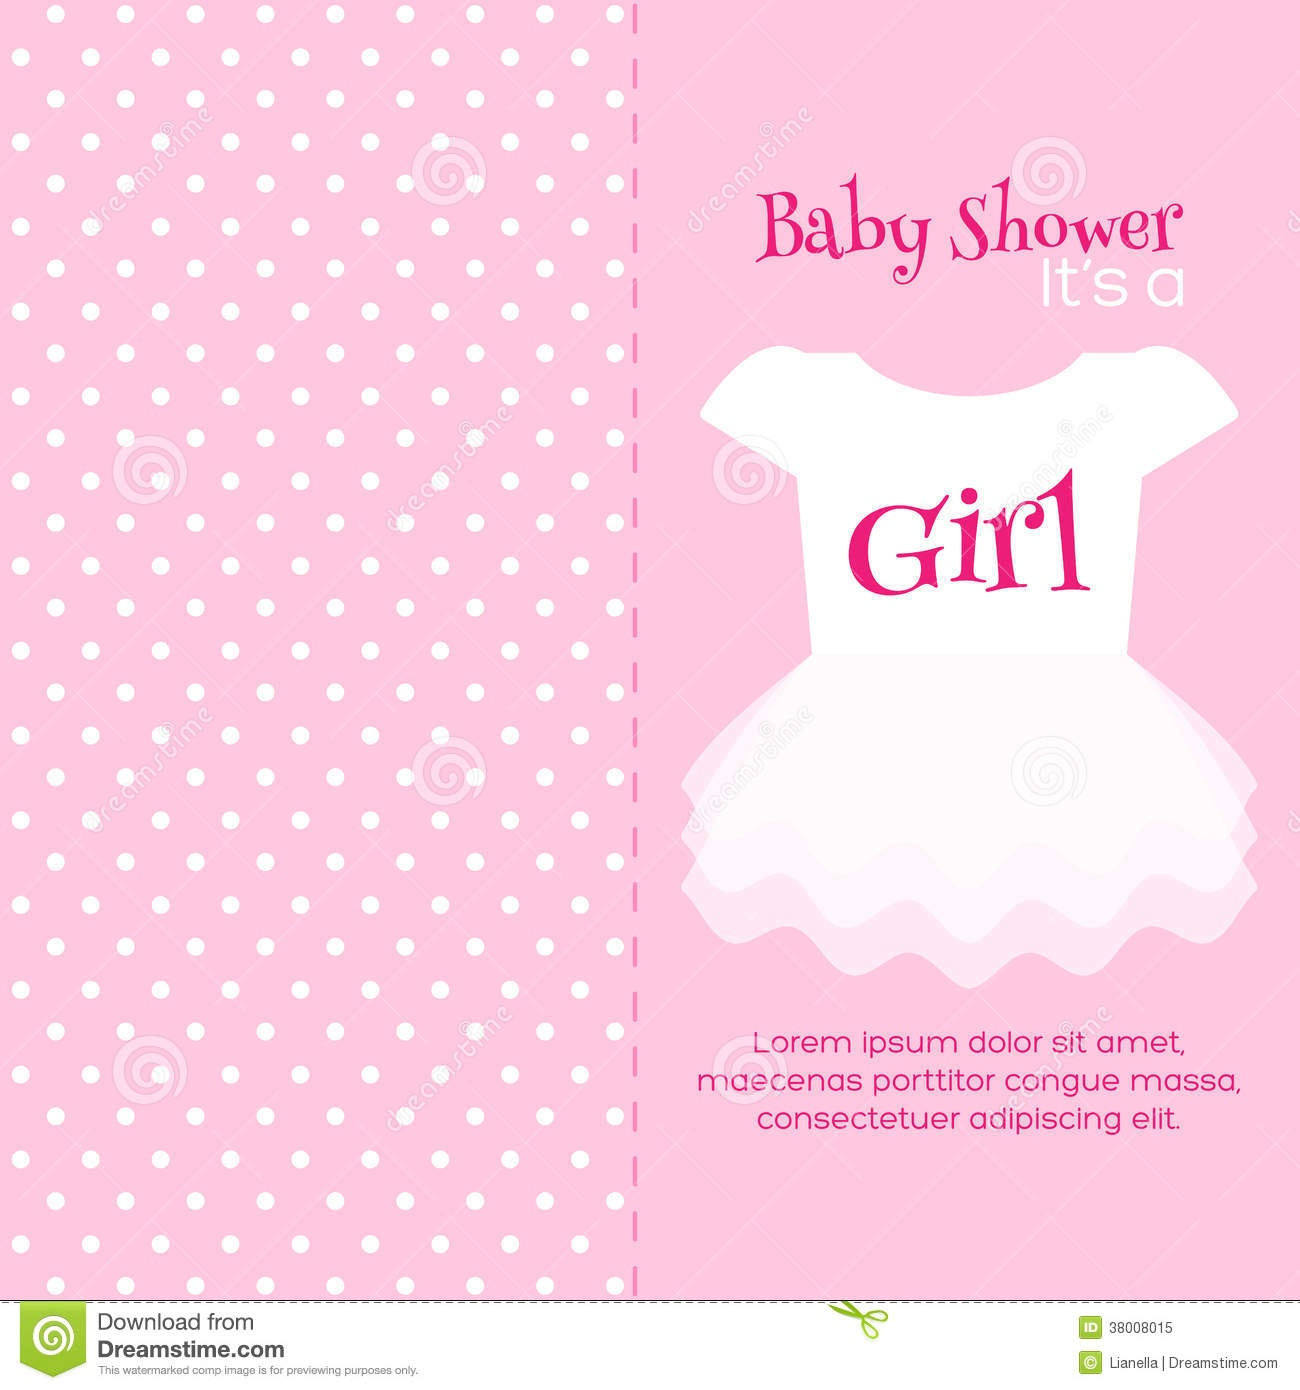 Download Baby Shower Invitation - Tutlin.psstech.co - Free Printable Blank Baby Shower Invitations